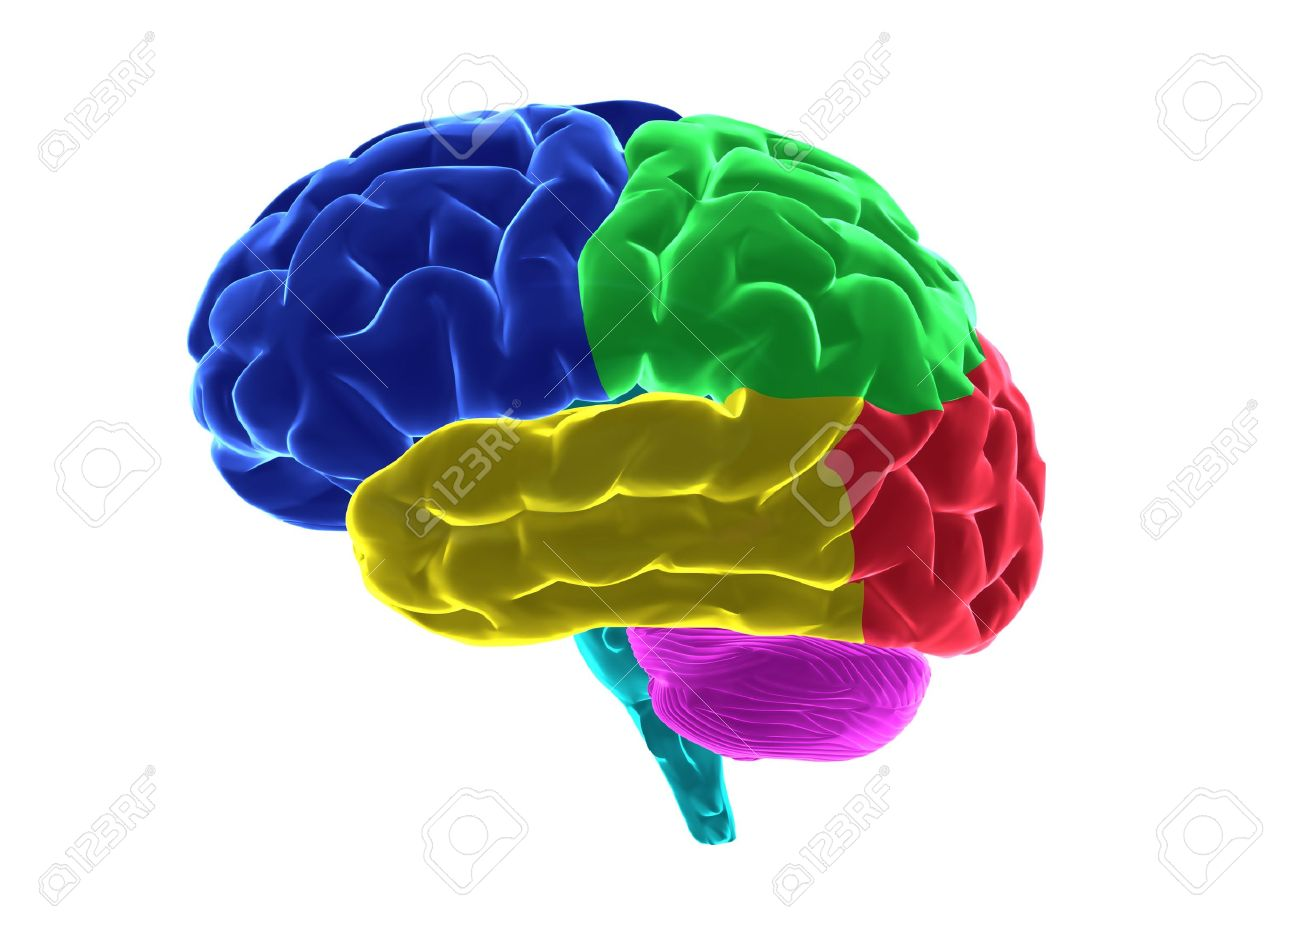 Human brain parts Stock Photo - 6150579